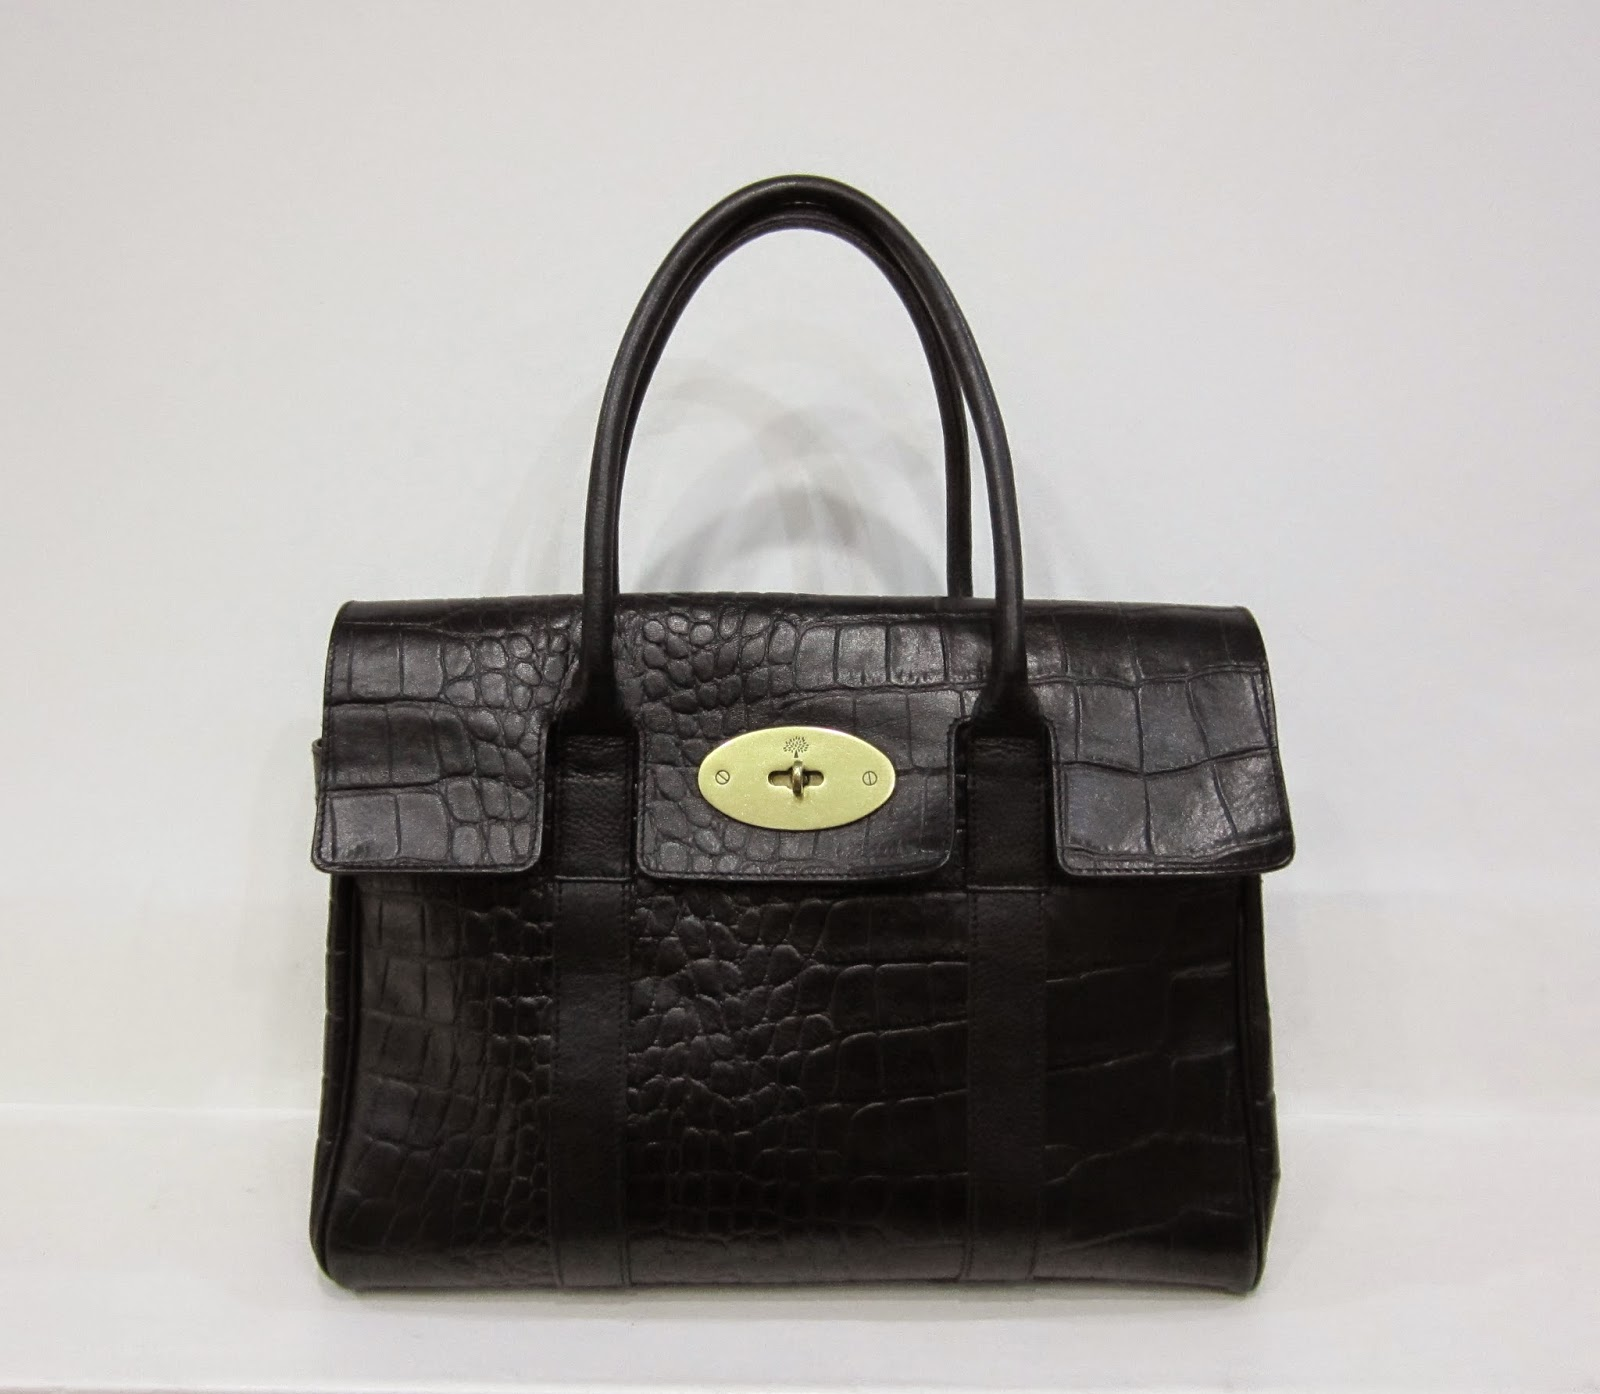 Mulberry Black Leather Mock Croc Bayswater Bag